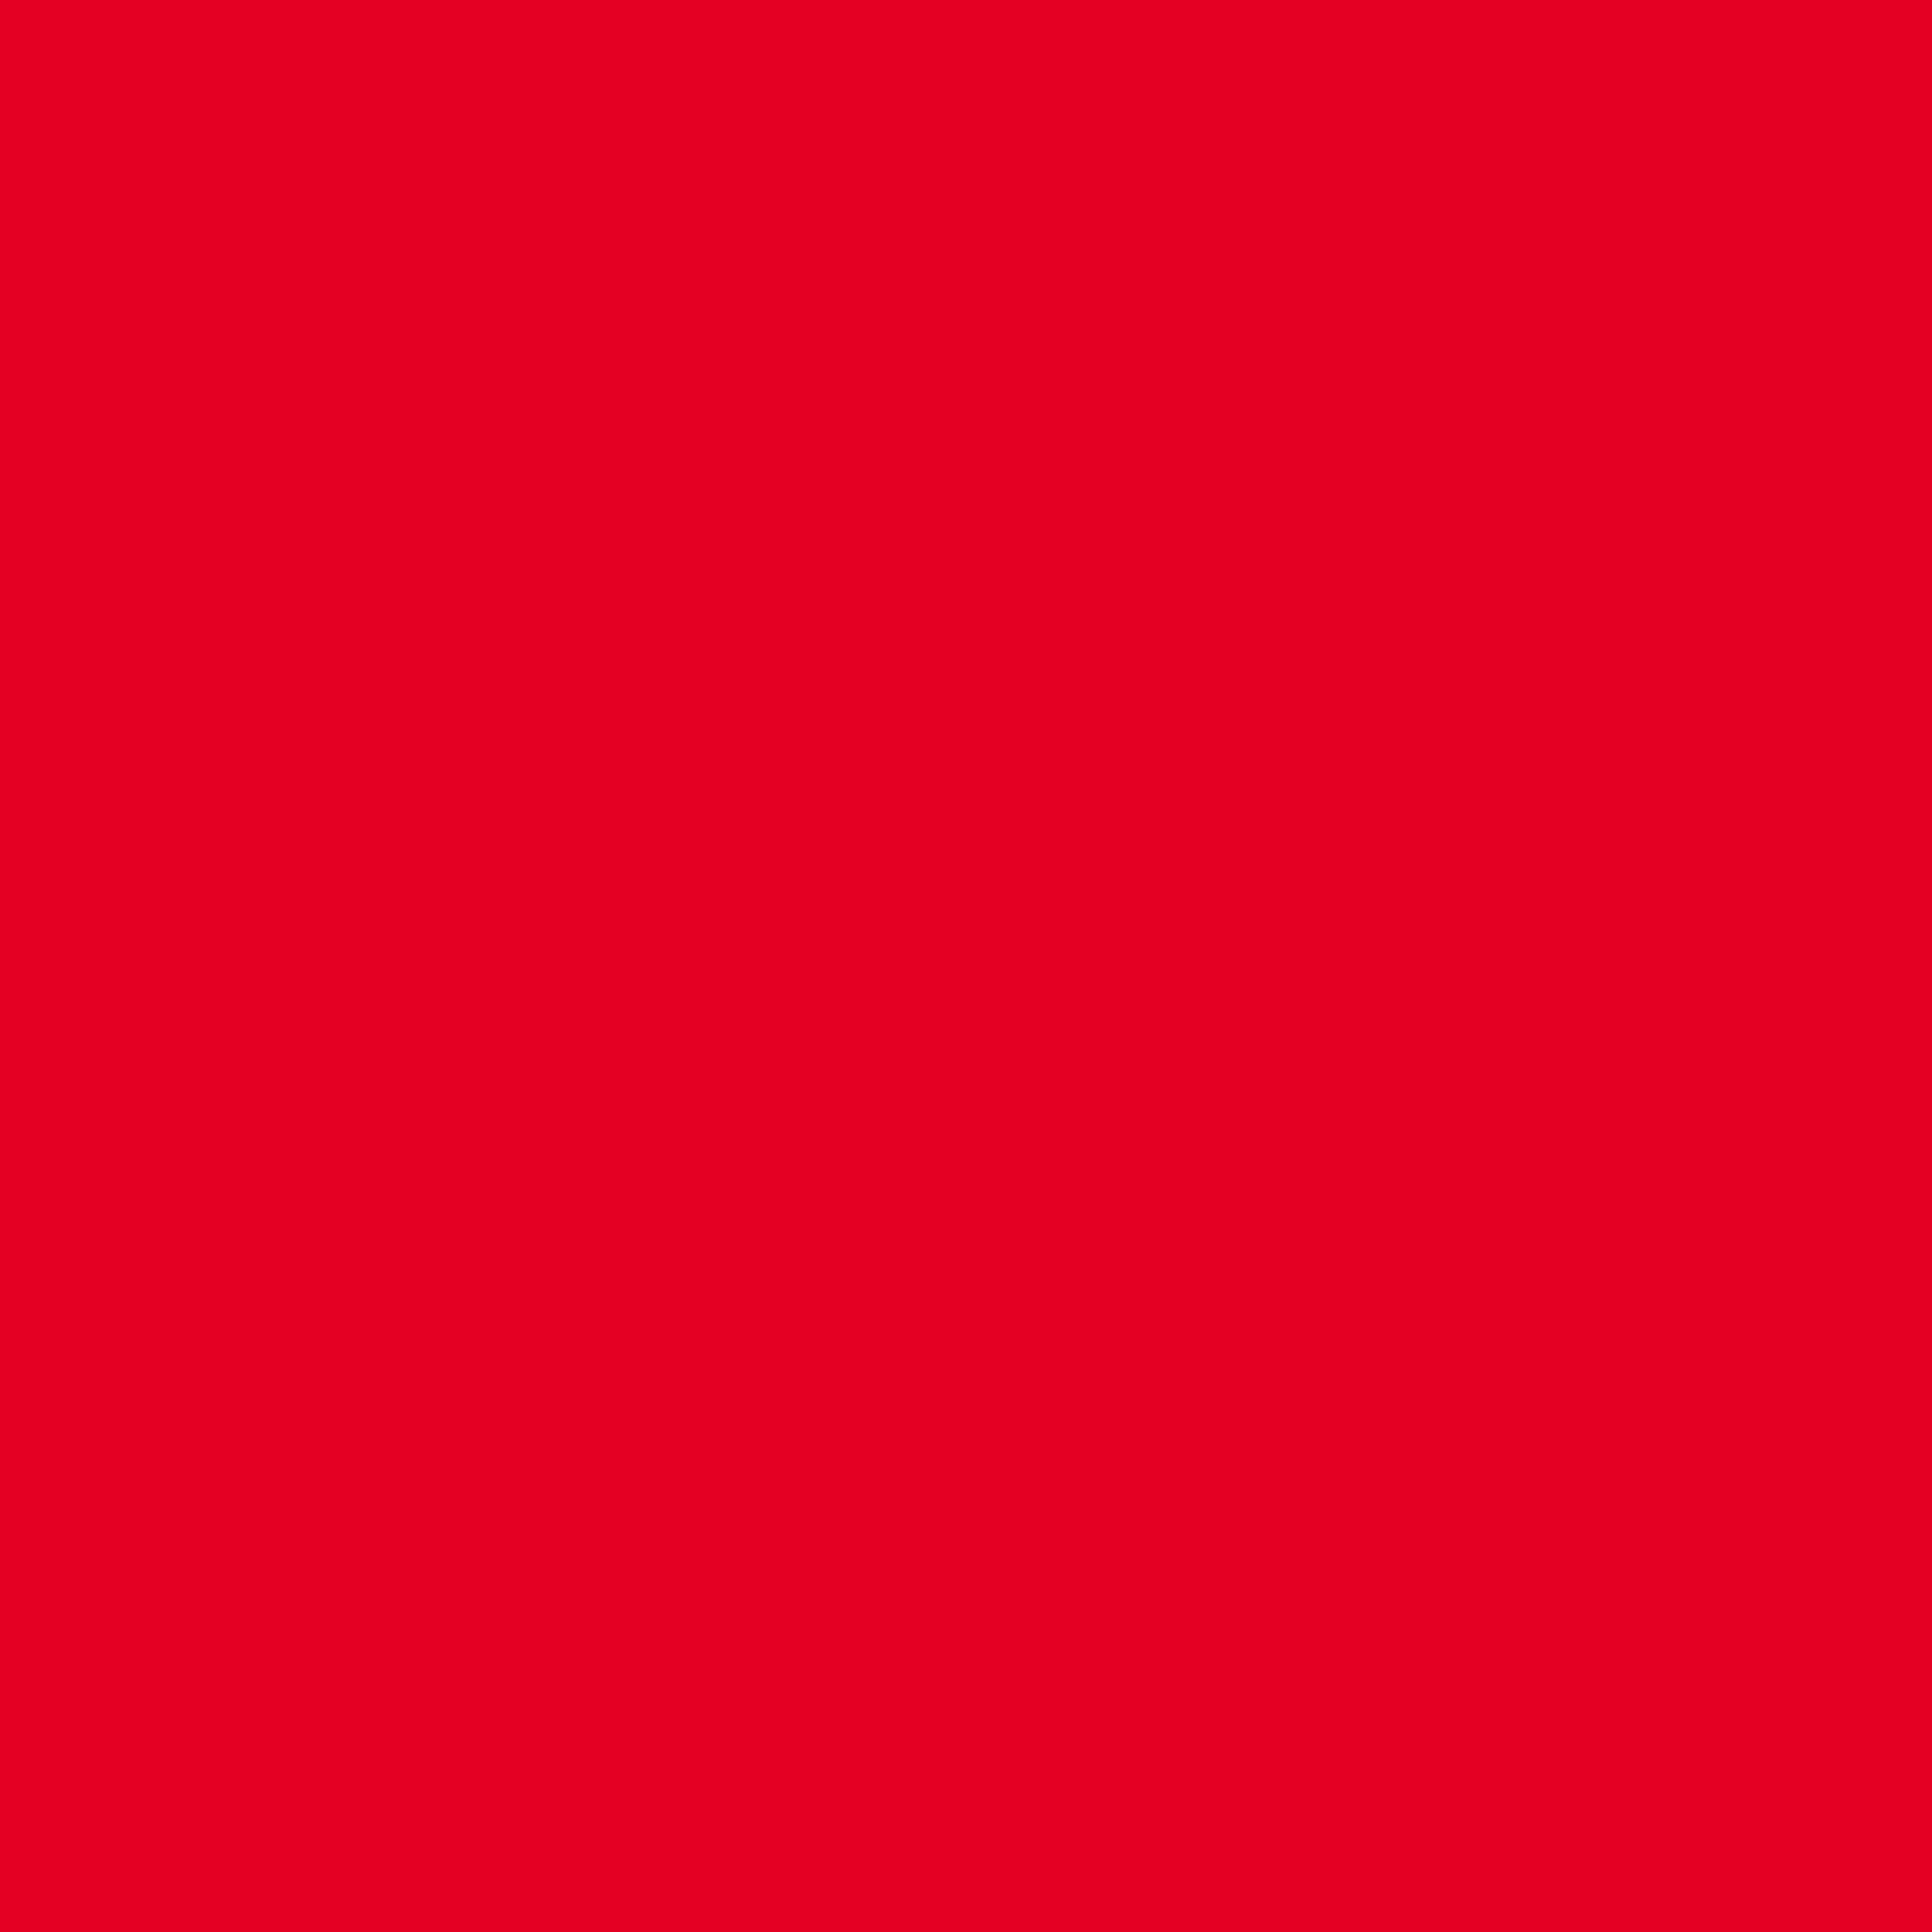 2732x2732 Cadmium Red Solid Color Background